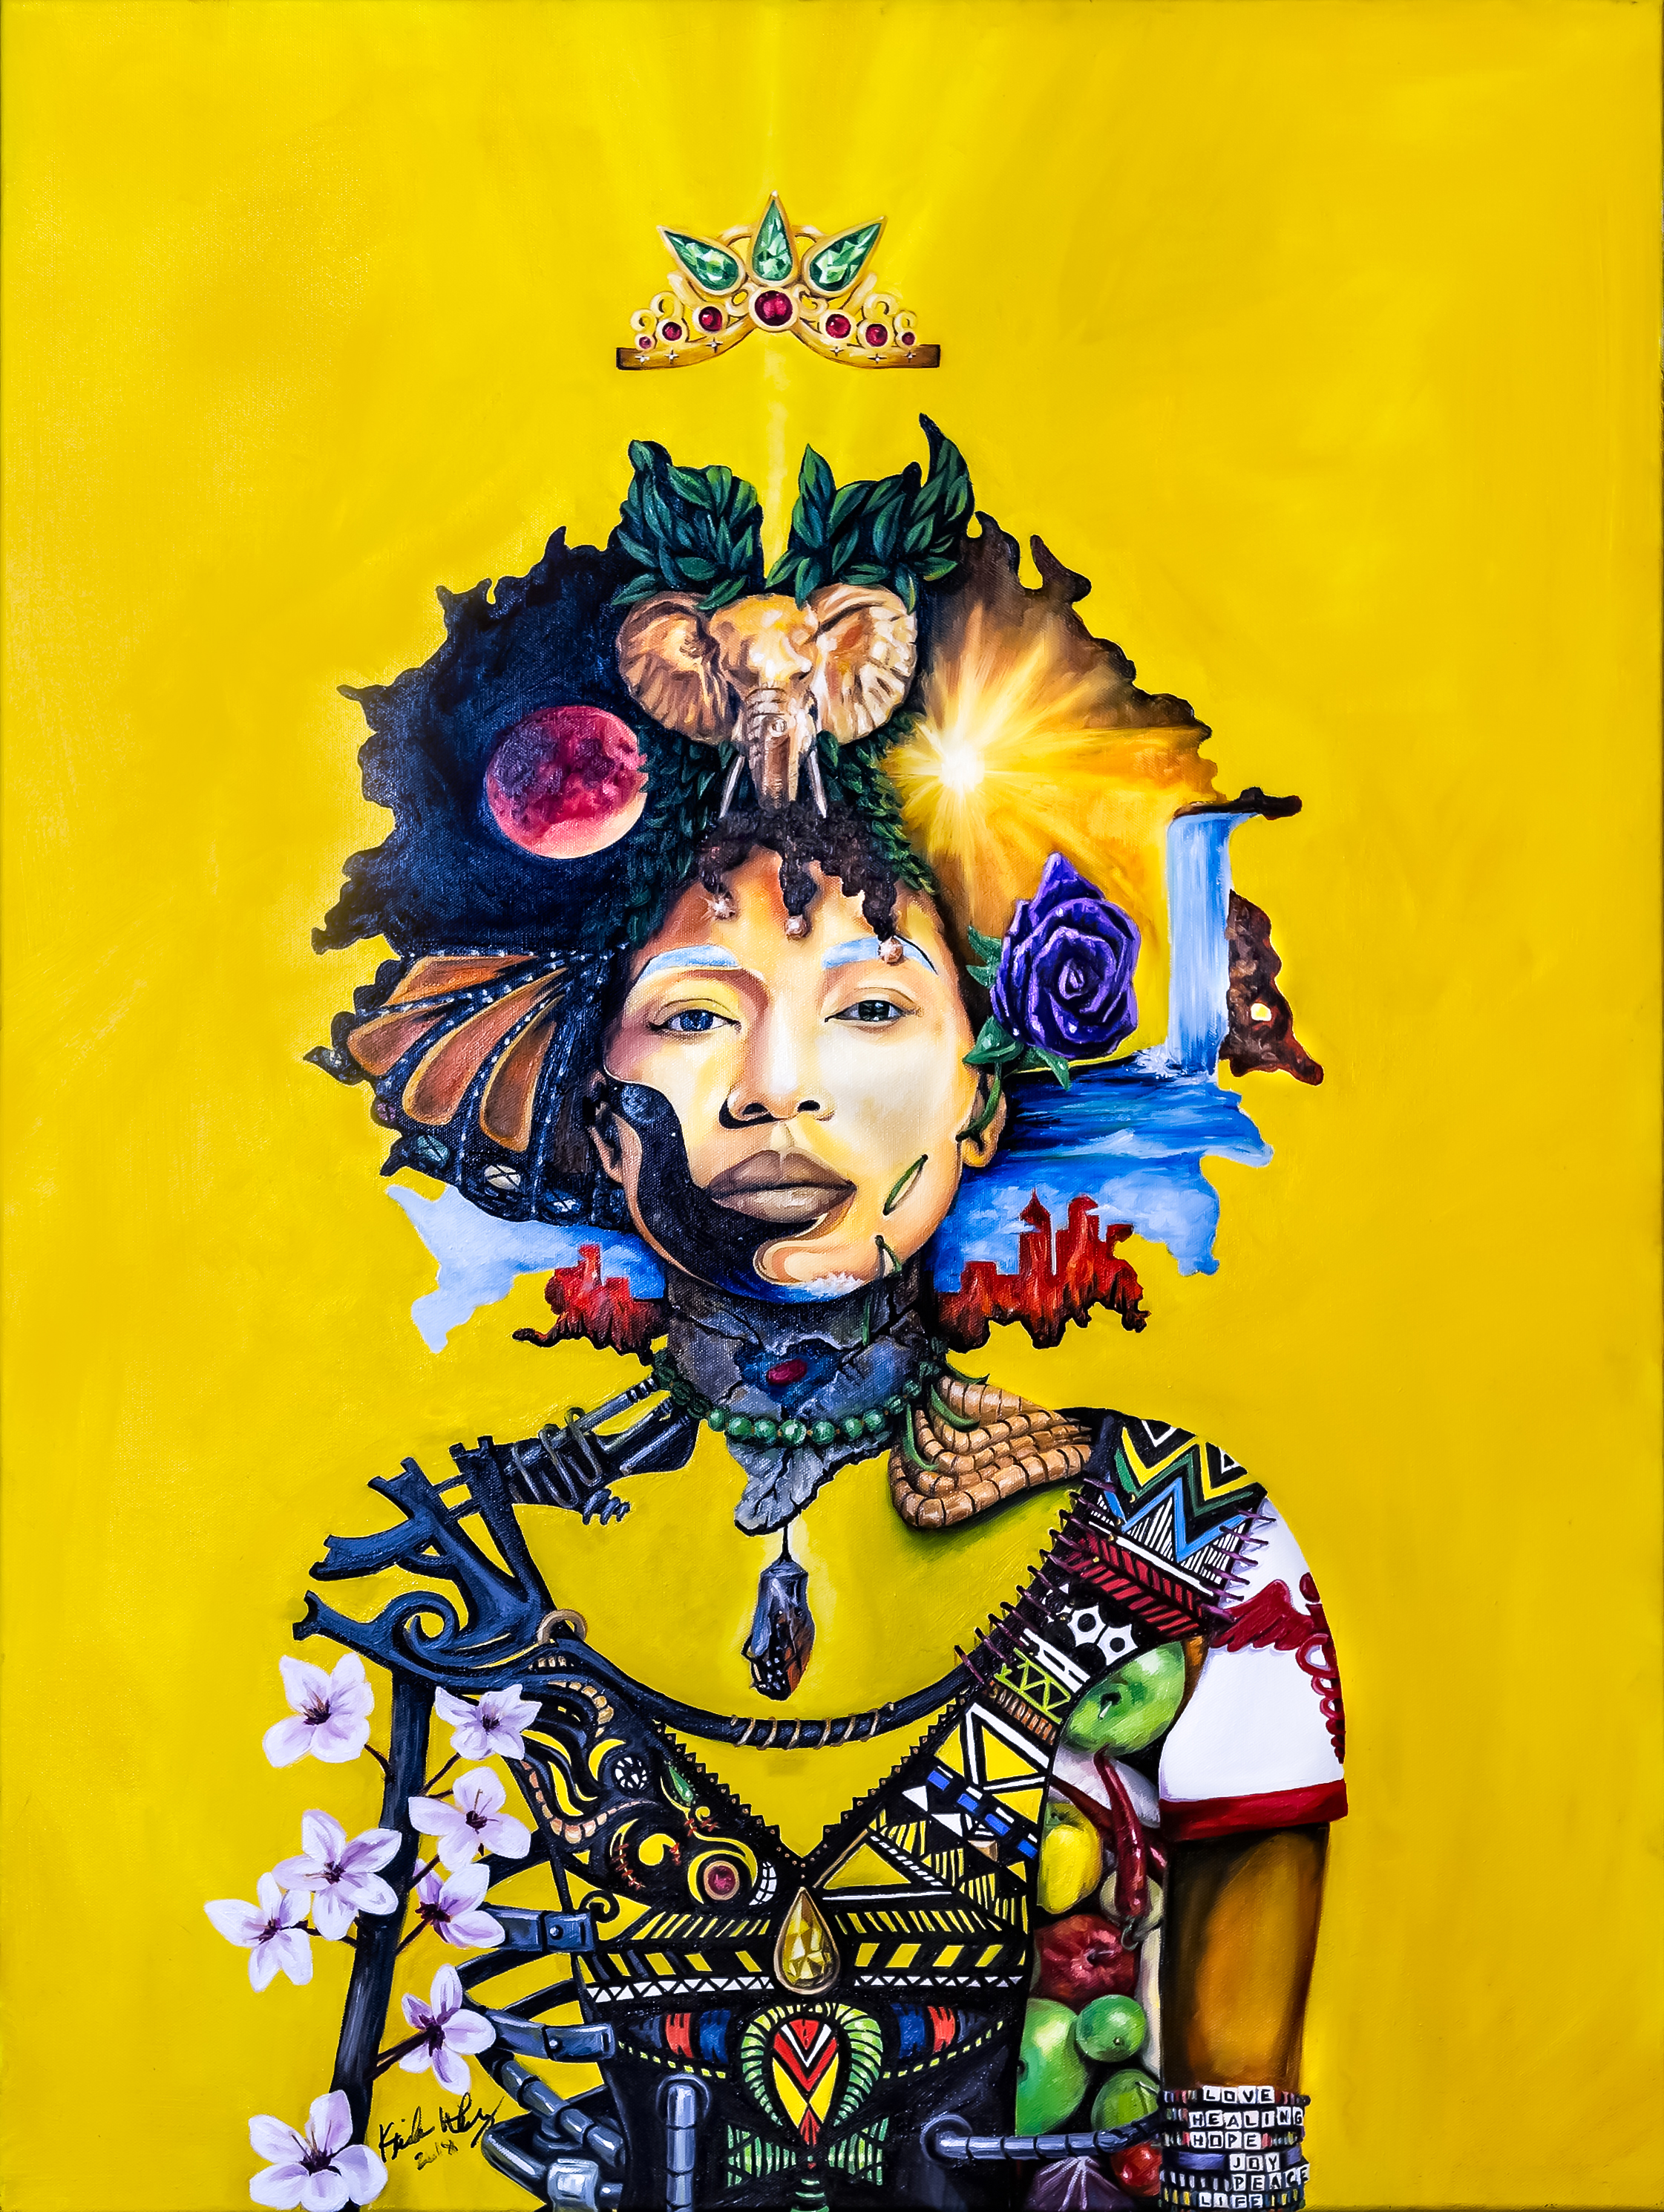 Keisha Whatley,  Queen Culture Portrait , oil on canvas. Courtesy of City of Philadelphia Office of Arts, Culture and the Creative Economy